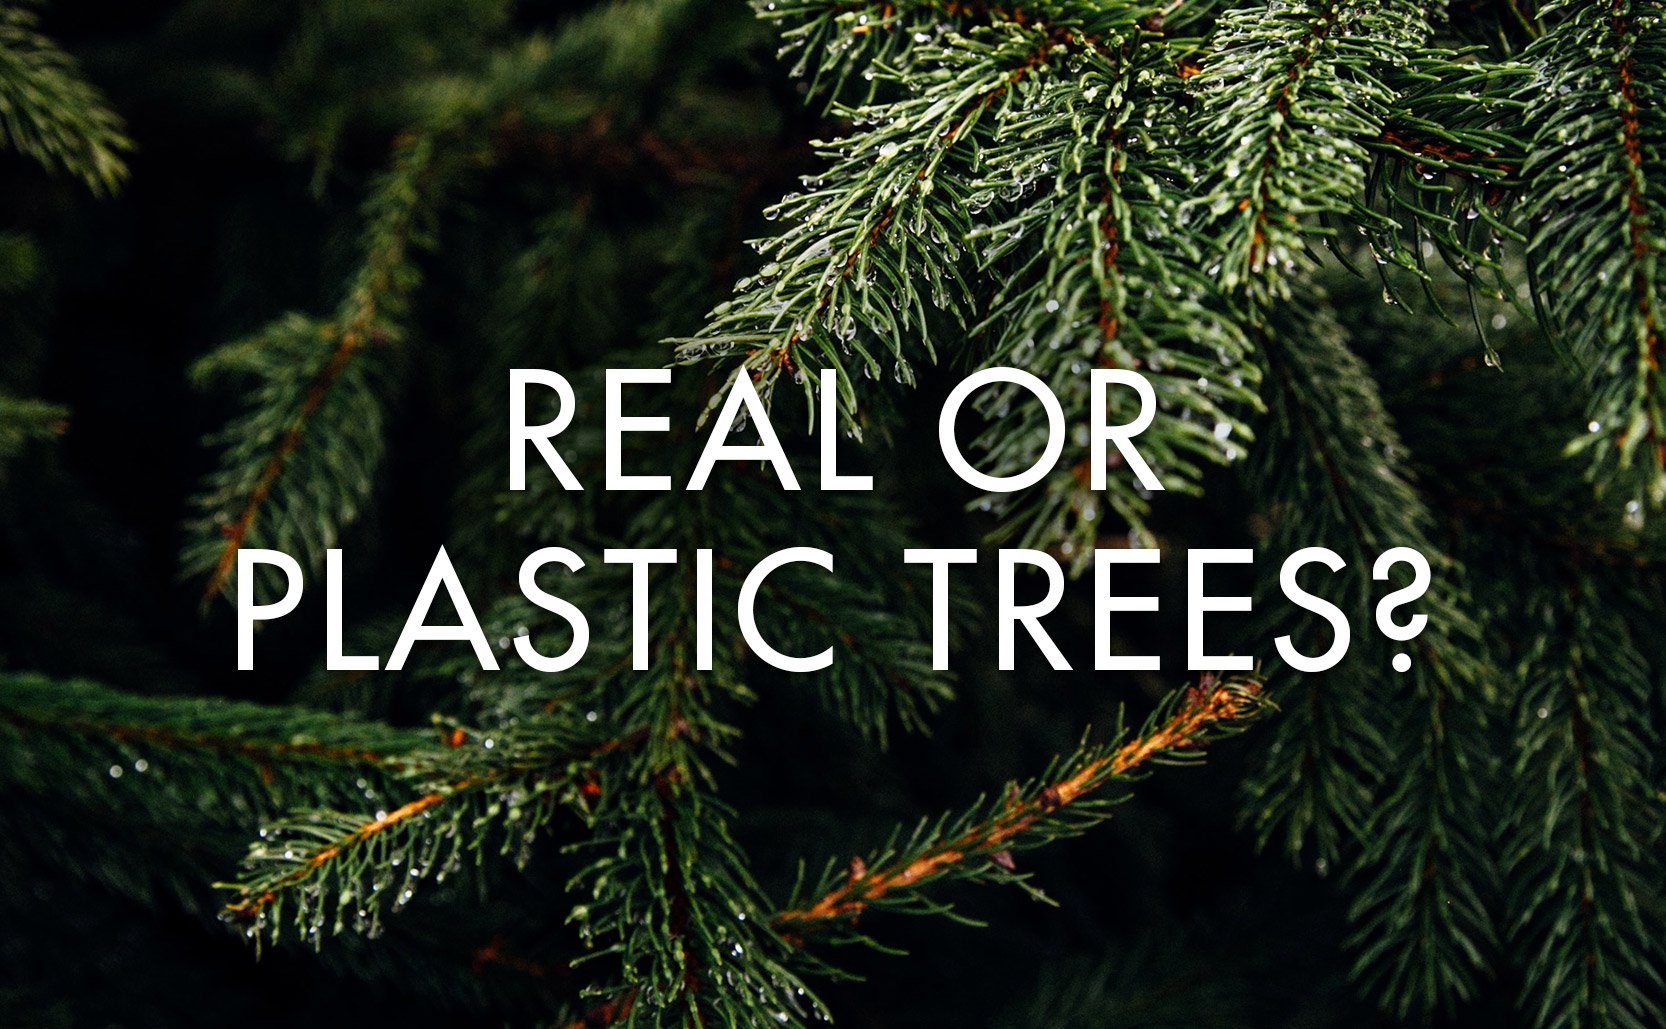 Real or Plastic Trees?